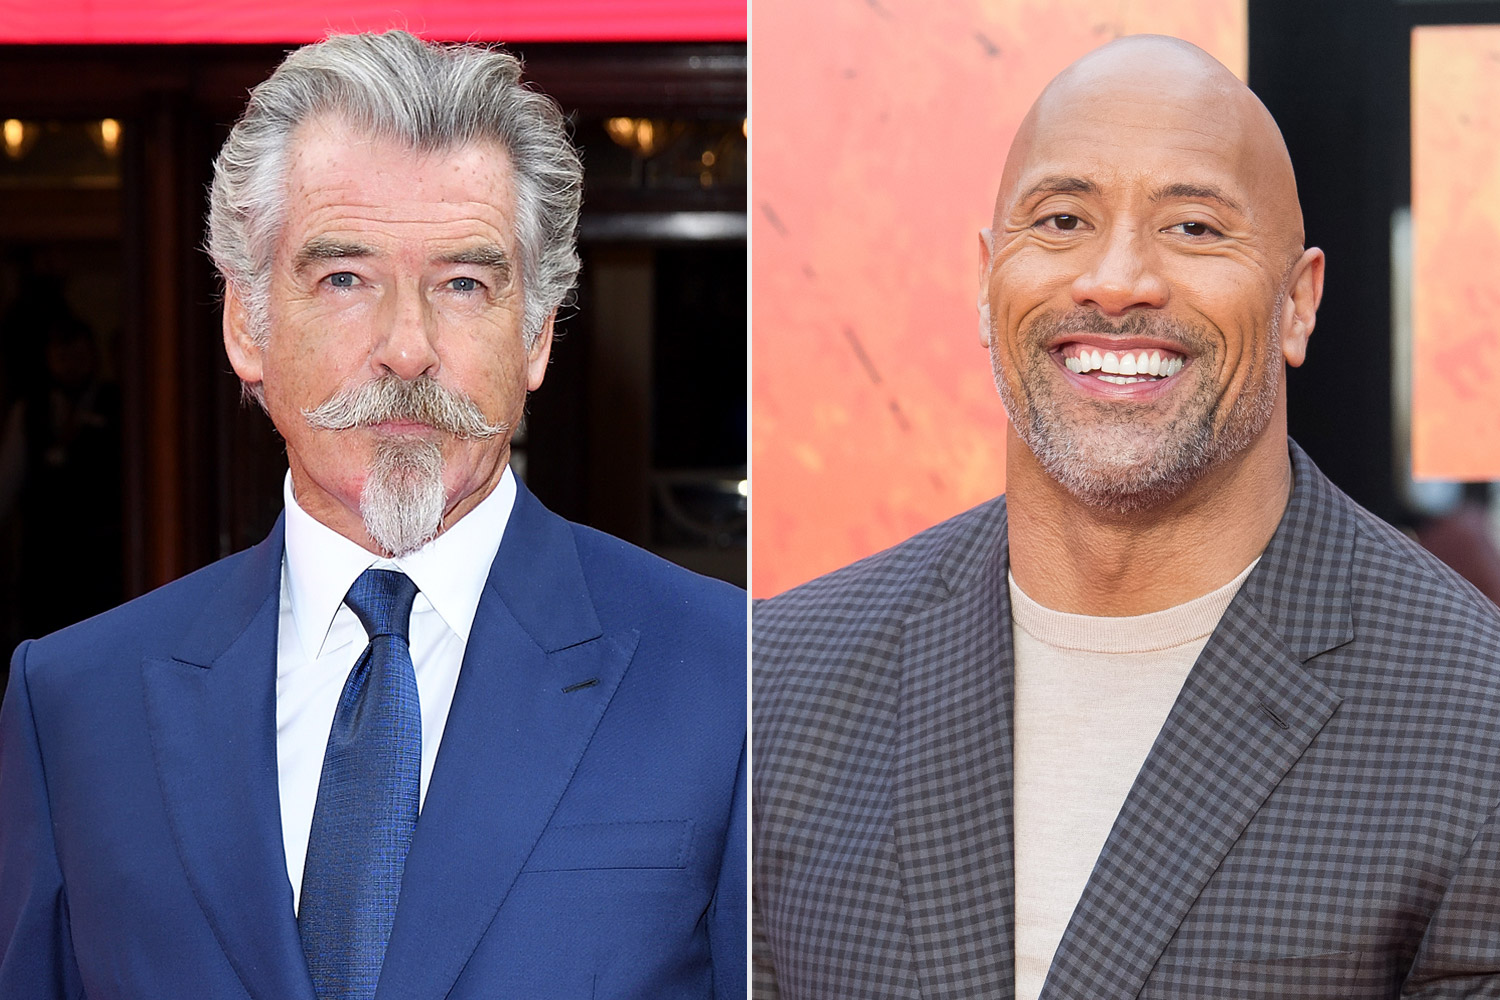 Pierce Brosnan as Dr. Fate Opposite Dwayne Johnson as Black Adam